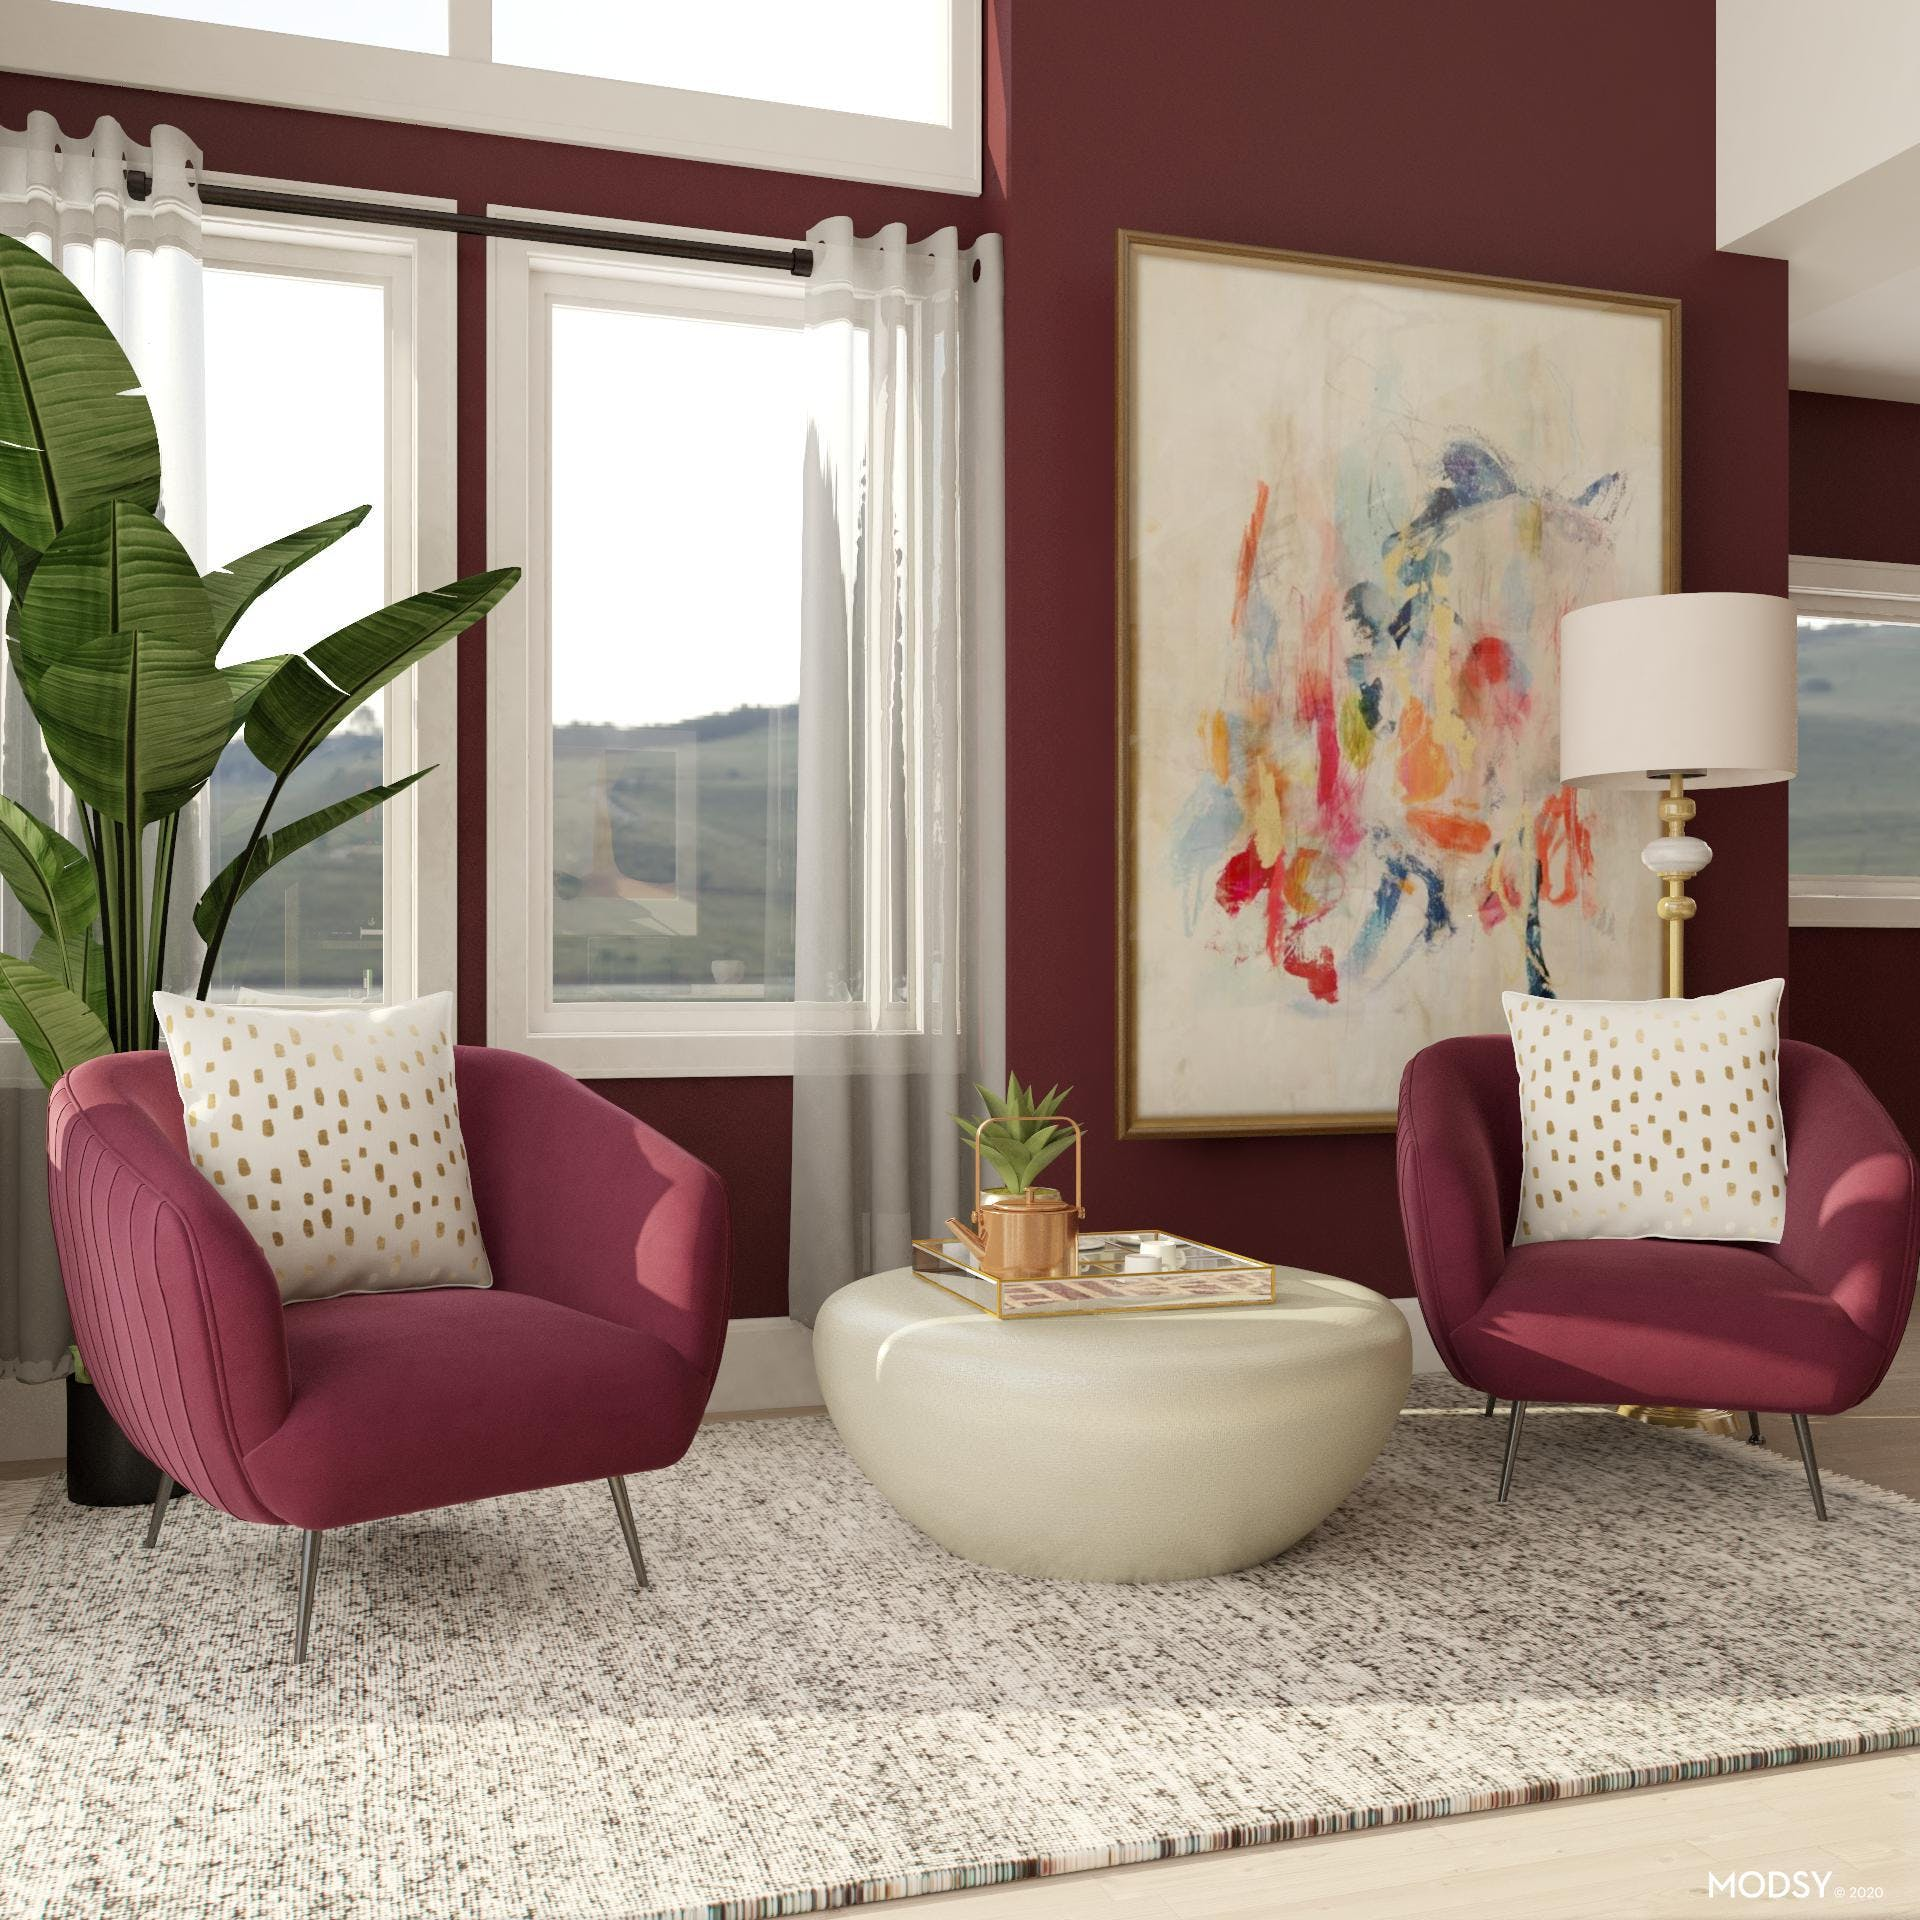 Glamorous Office Seating with a Touch of Jewel-tones